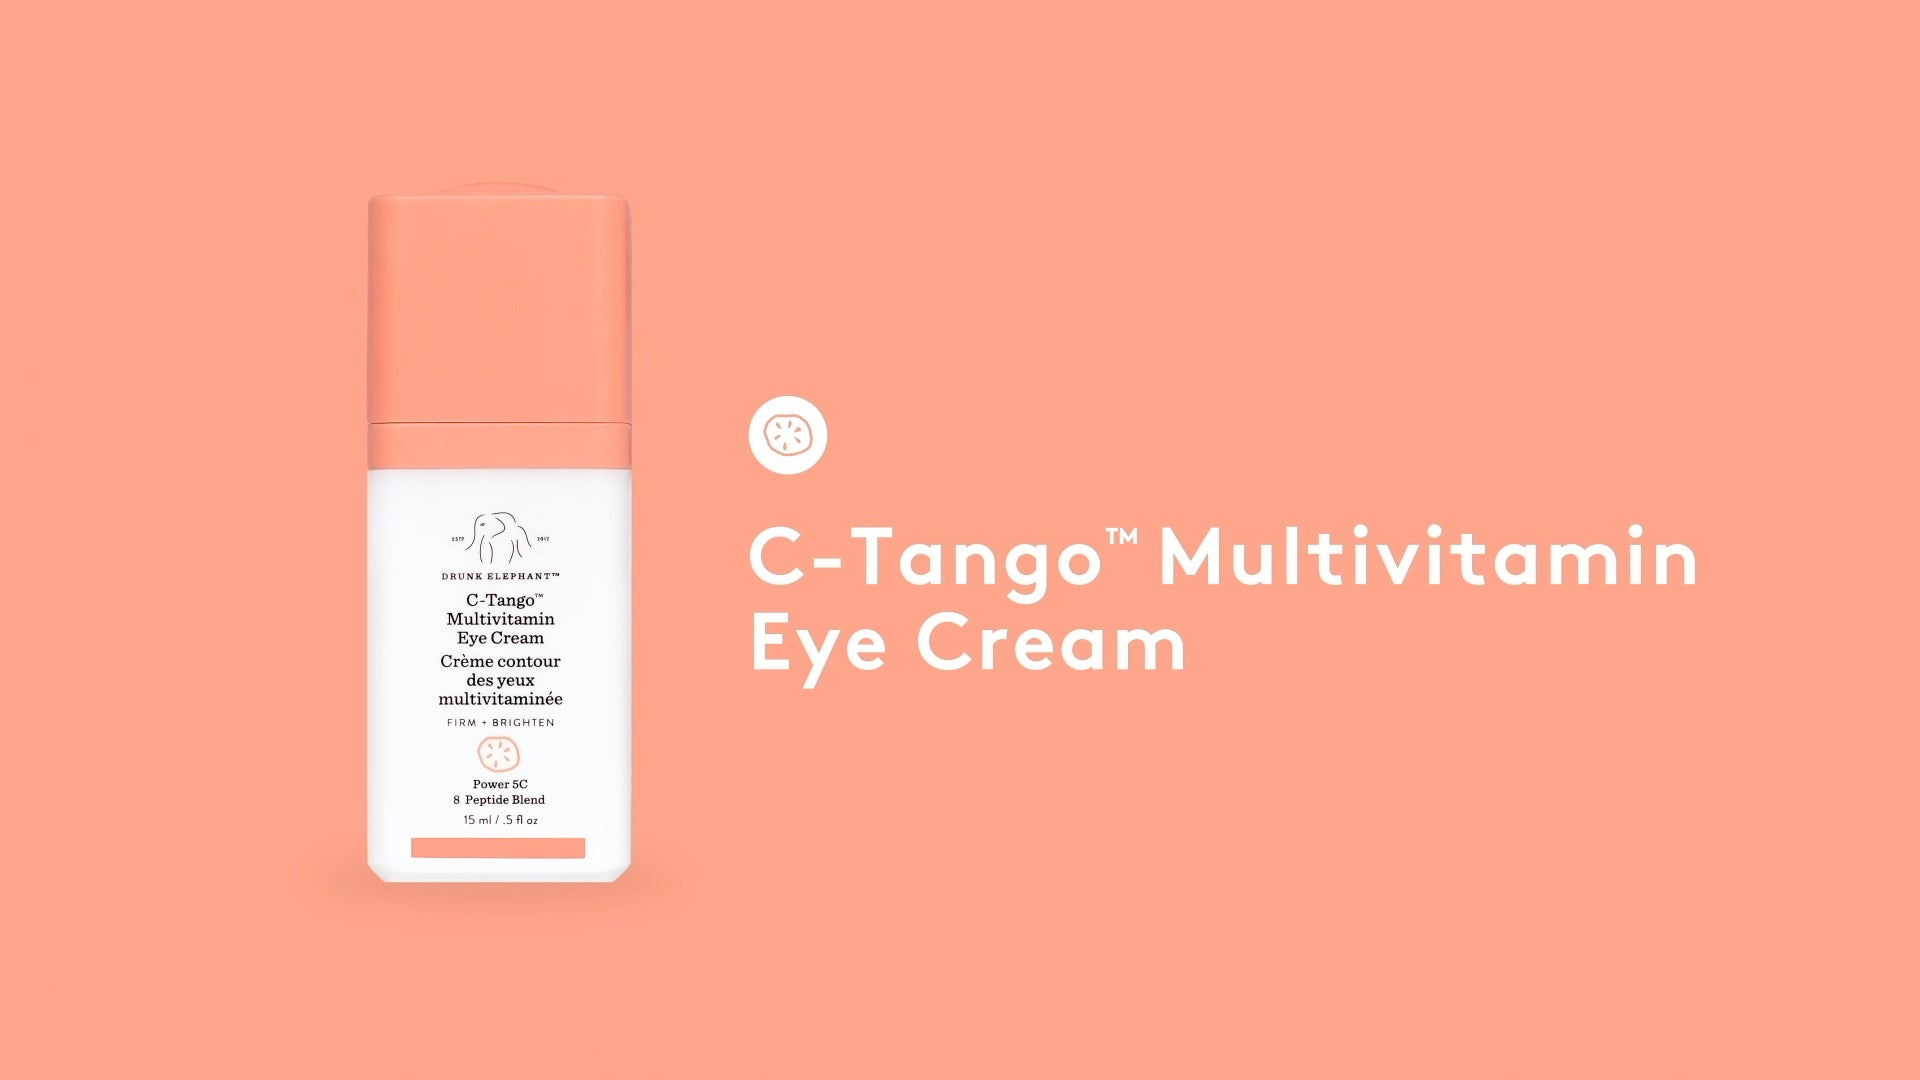 video introducing Drunk Elephant C-Tango Multivitamin Eye Cream